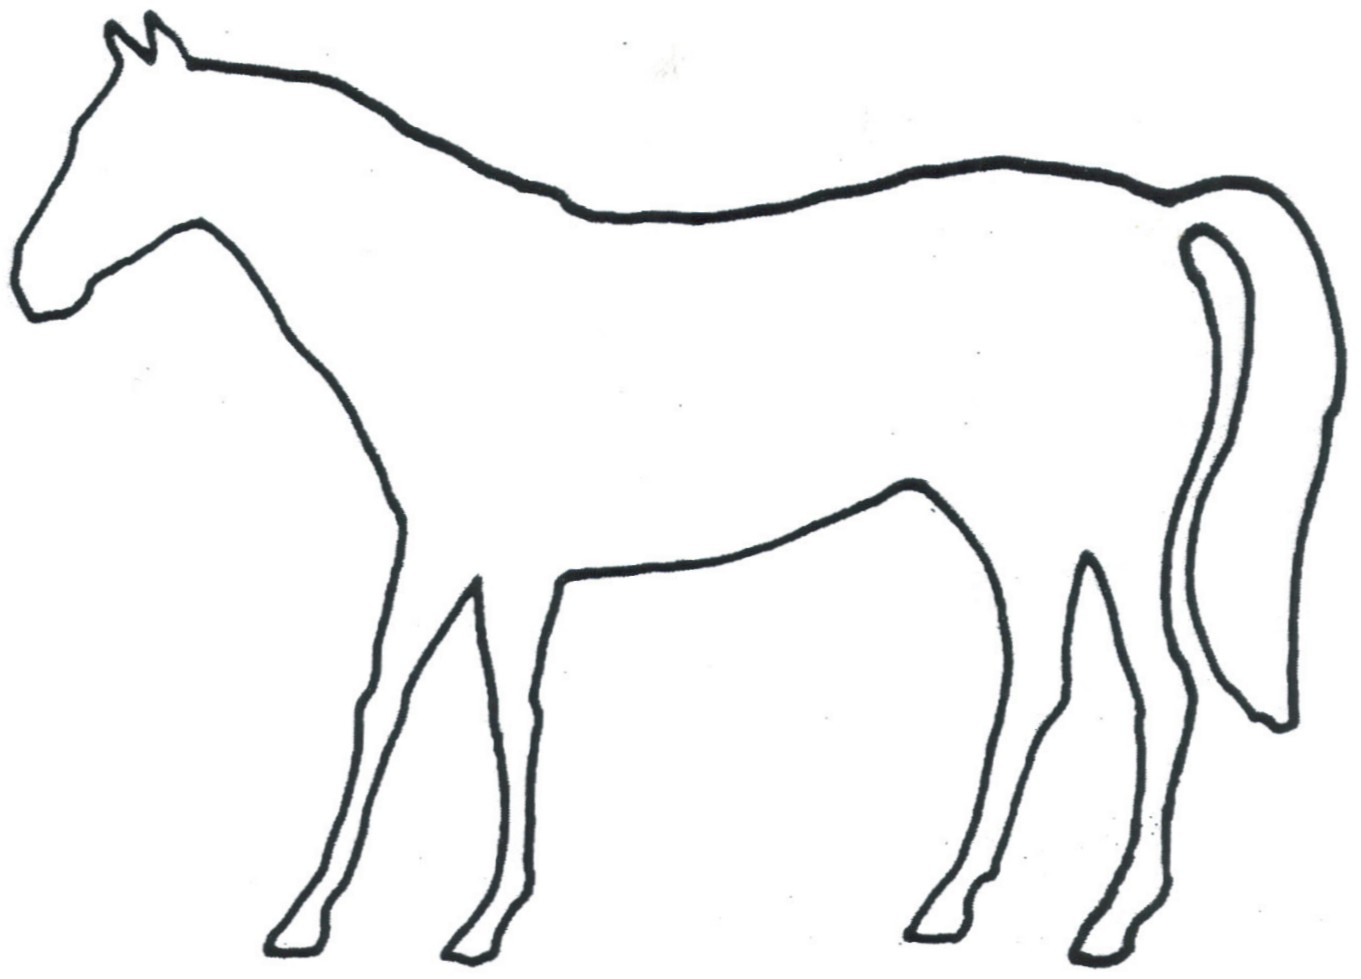 Pt 33 13j Horse Outline Size 4 1 2 Wide X 3 1 4 Tall Price ...